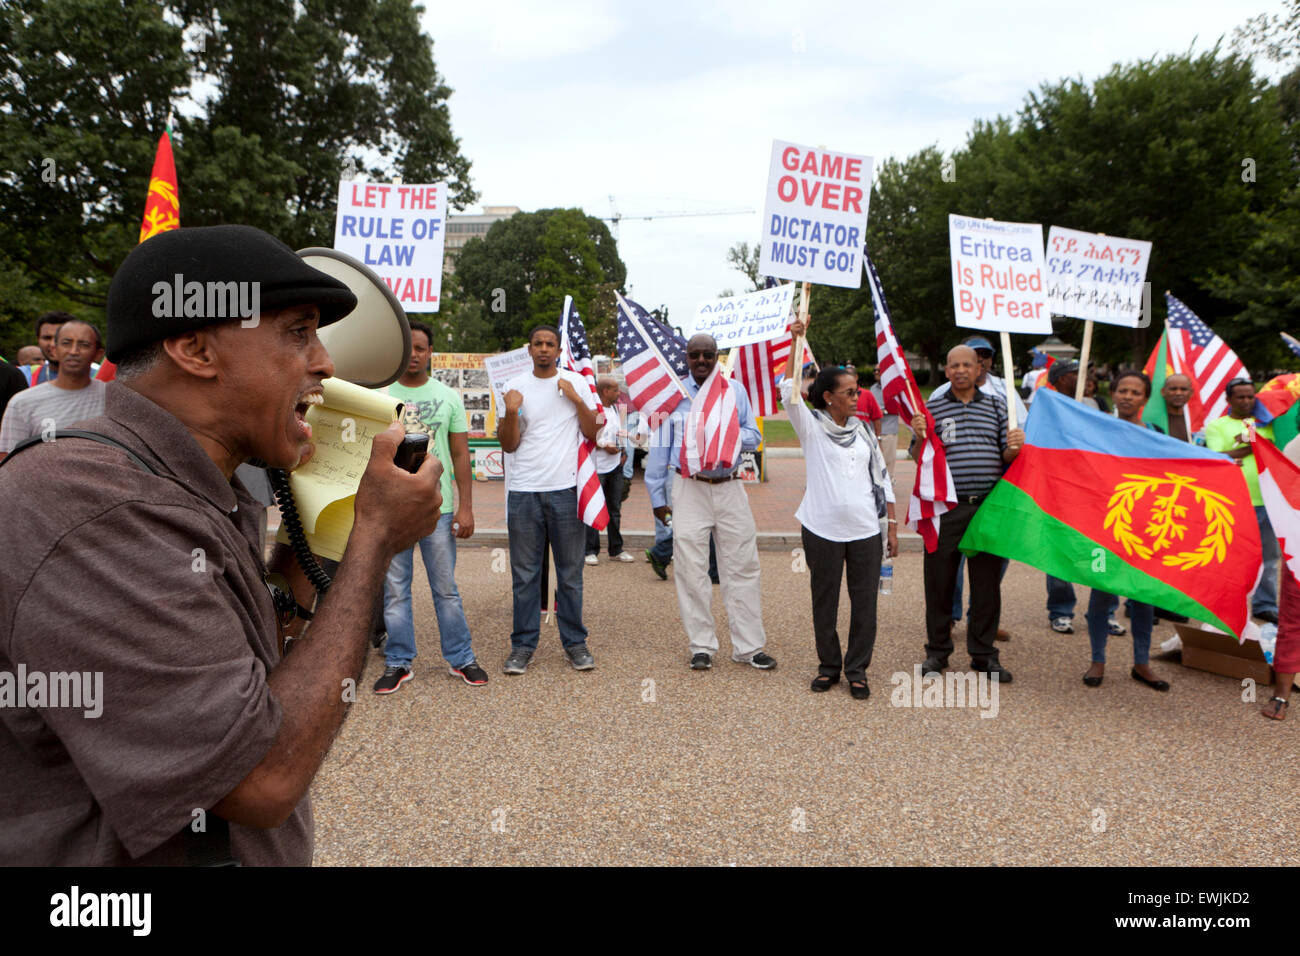 Eritreans protest for democratic change and human rights in Eritrea - Washington, DC USA Stock Photo